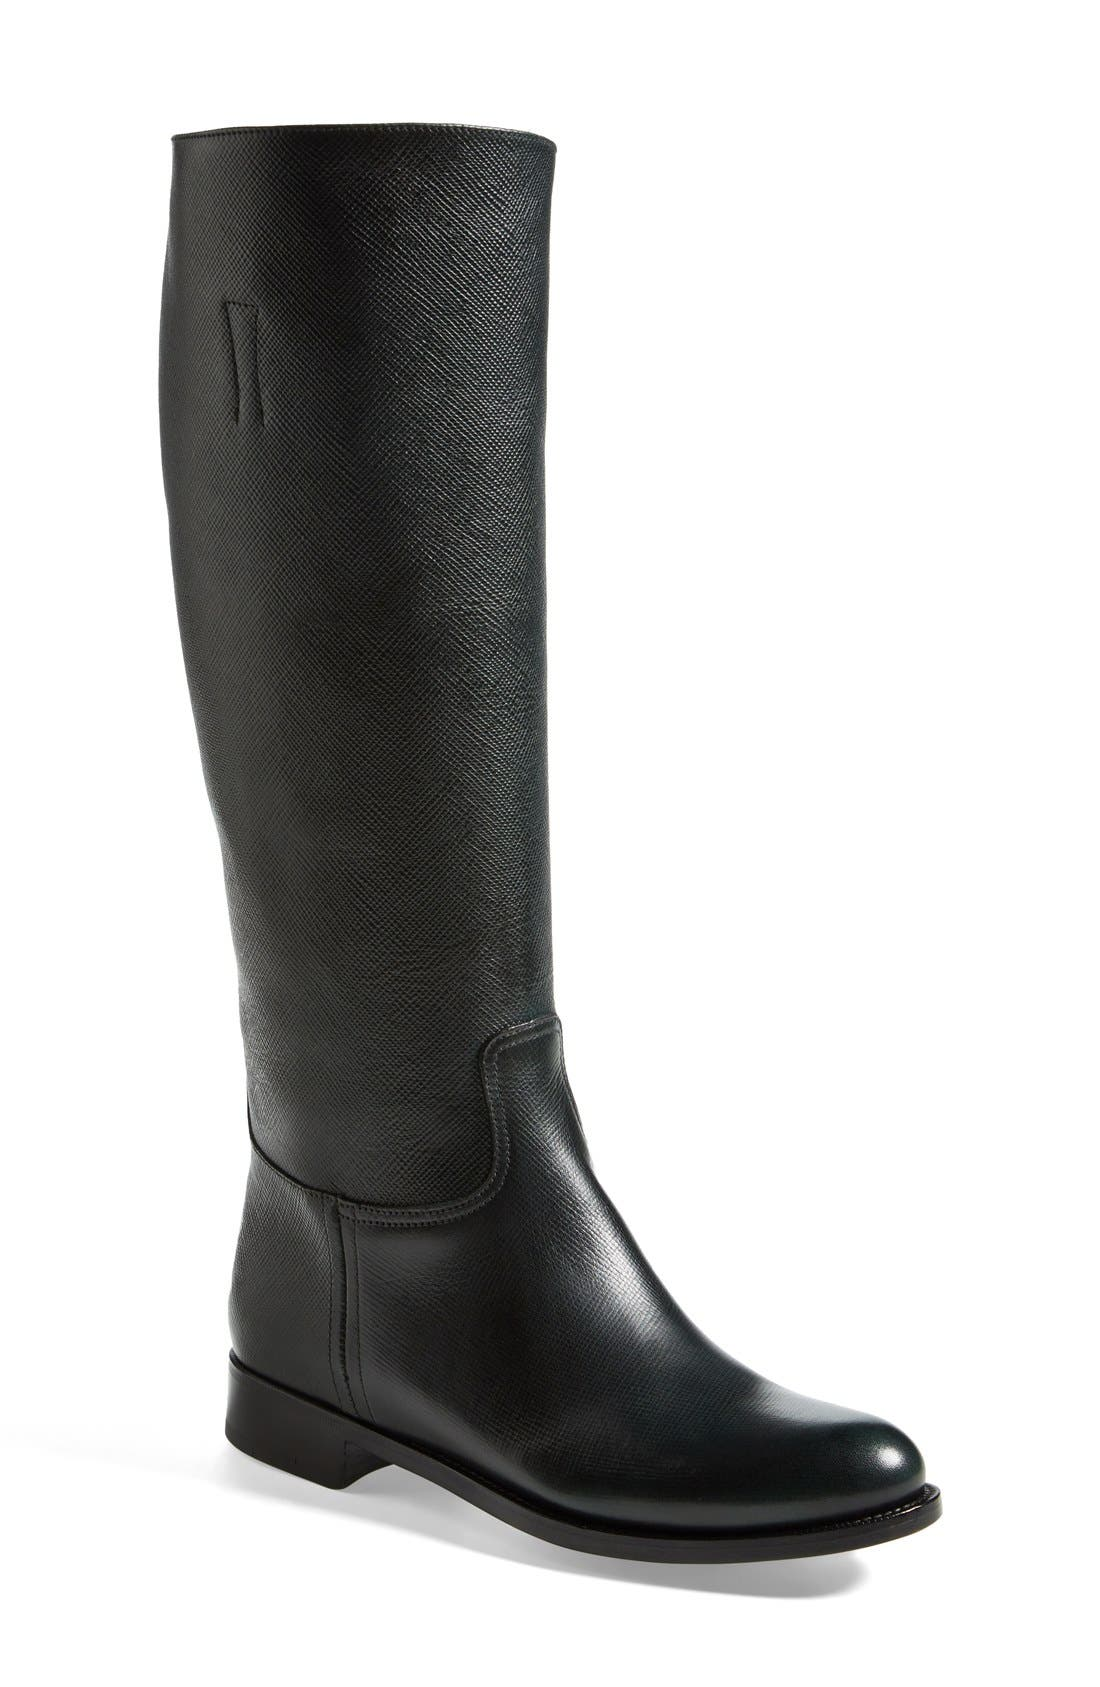 Alternate Image 1 Selected - Prada Riding Boot (Women)